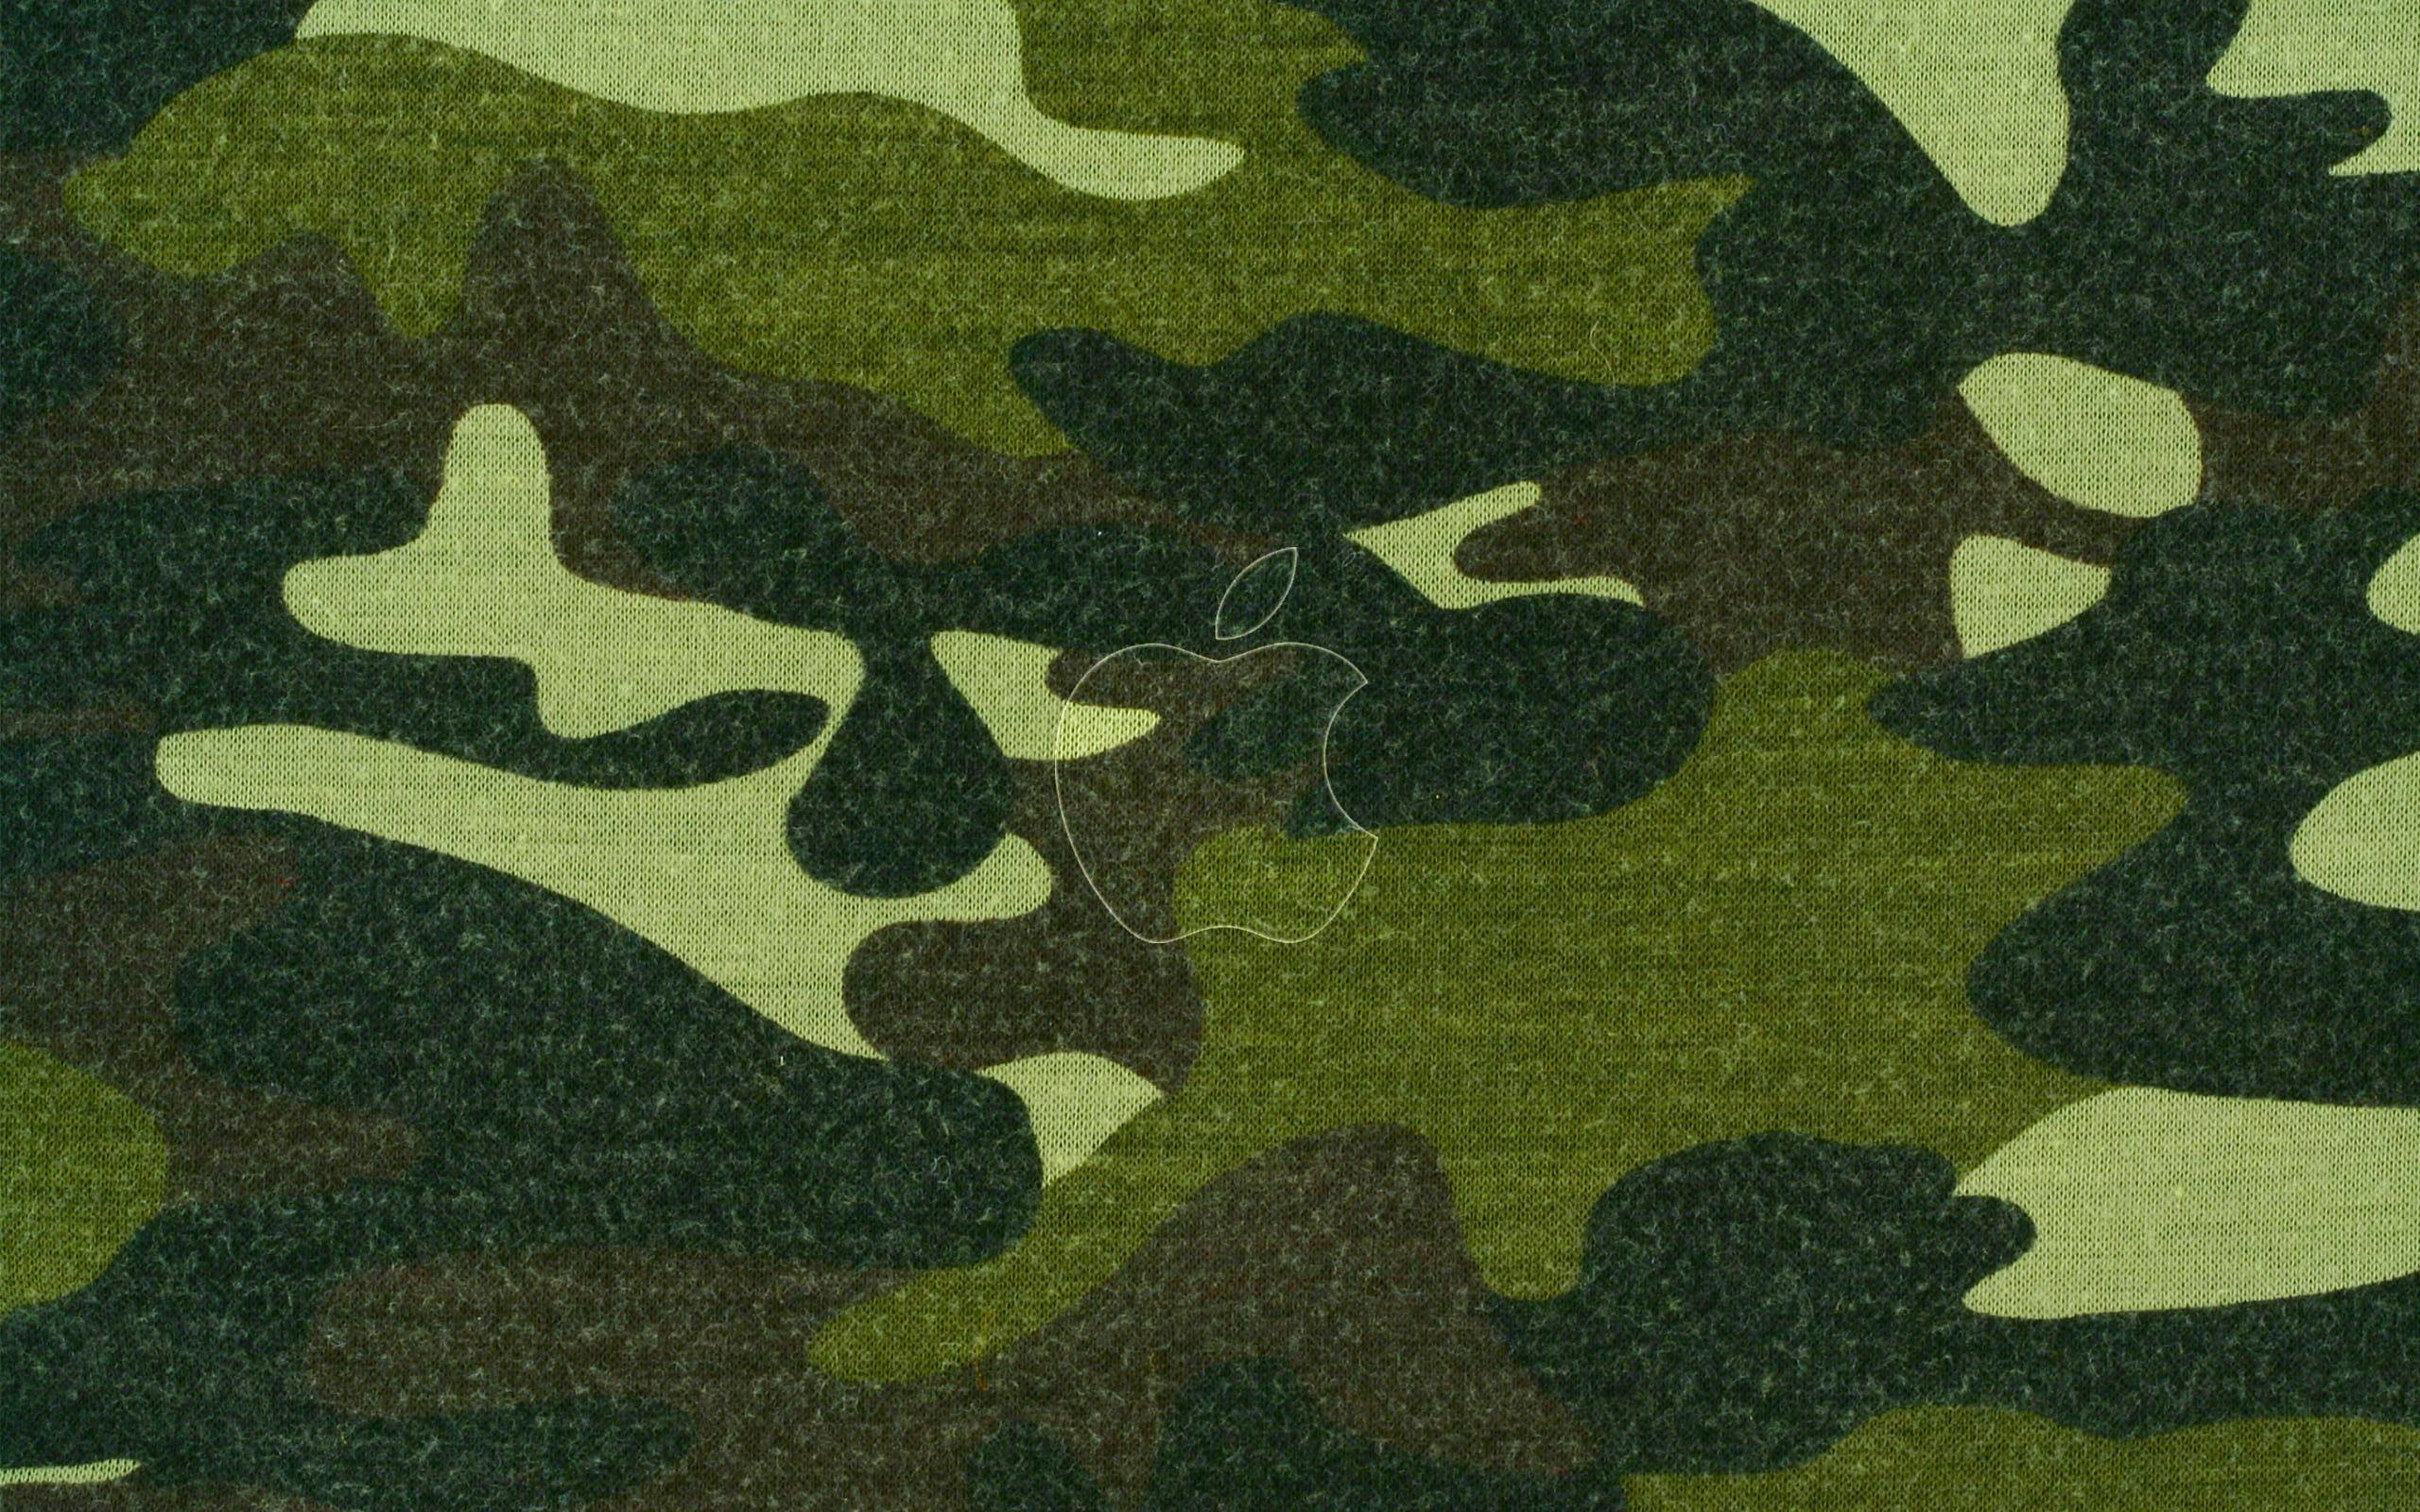 2560x1600 camouflage desktop wallpapers #11072